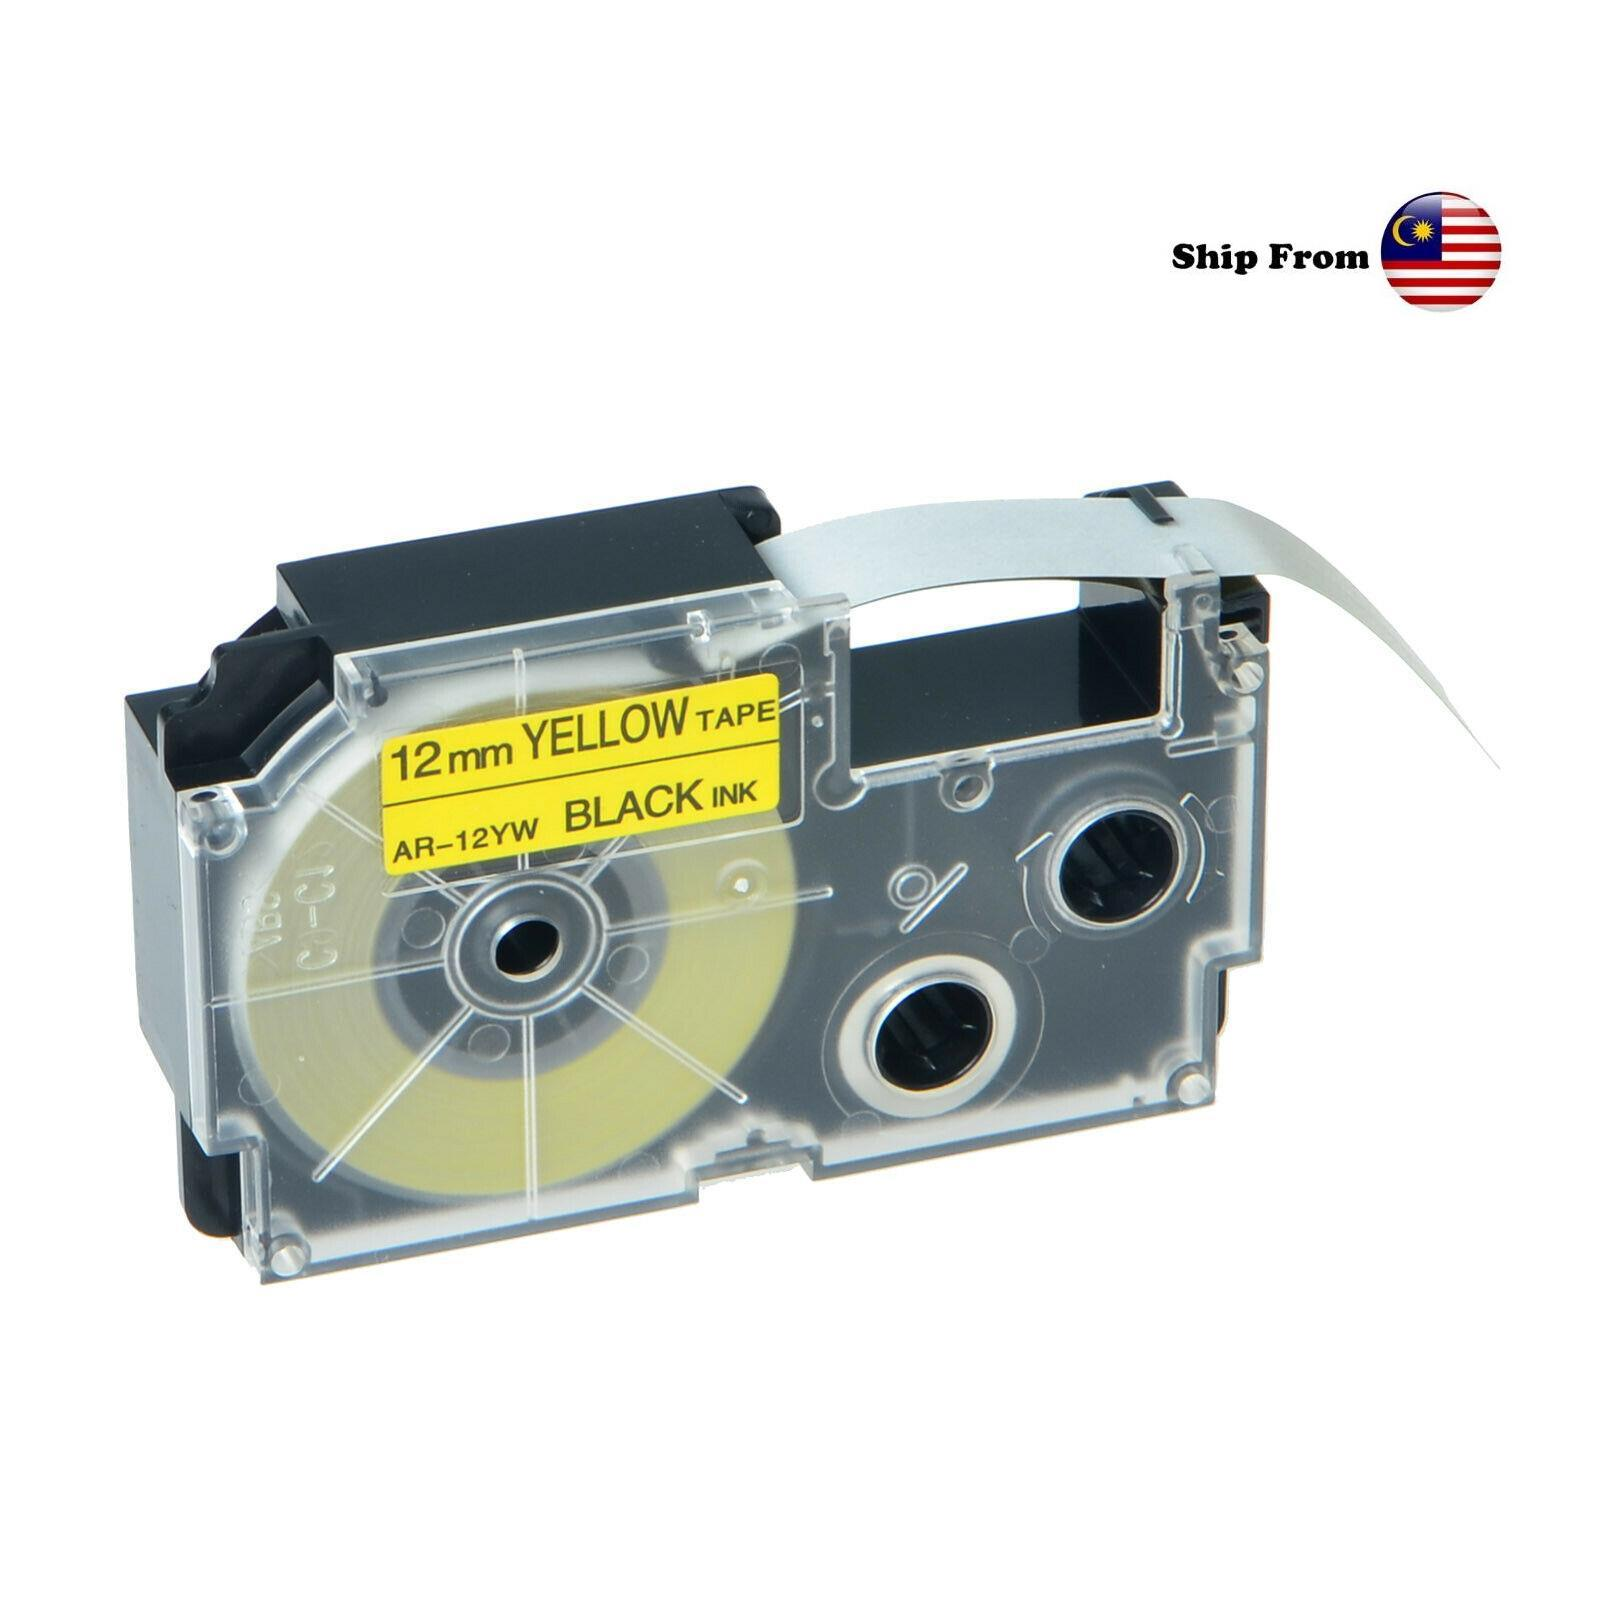 Casio Compatible Printer Label Tape Cartridge Yellow 12mm ~ XR-12YW